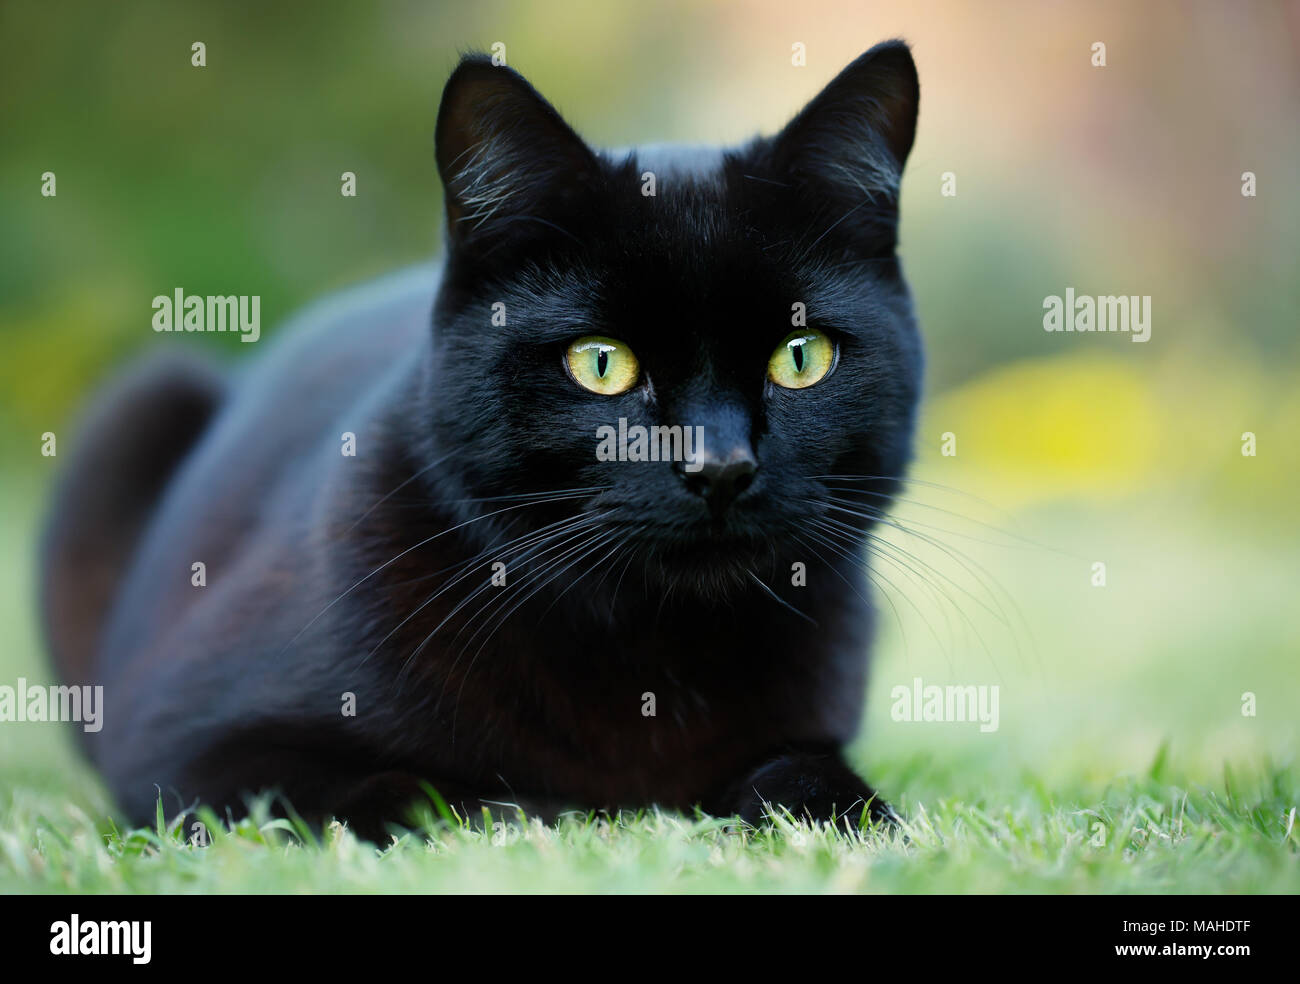 Close up of a black cat lying on the grass in the garden, UK. - Stock Image